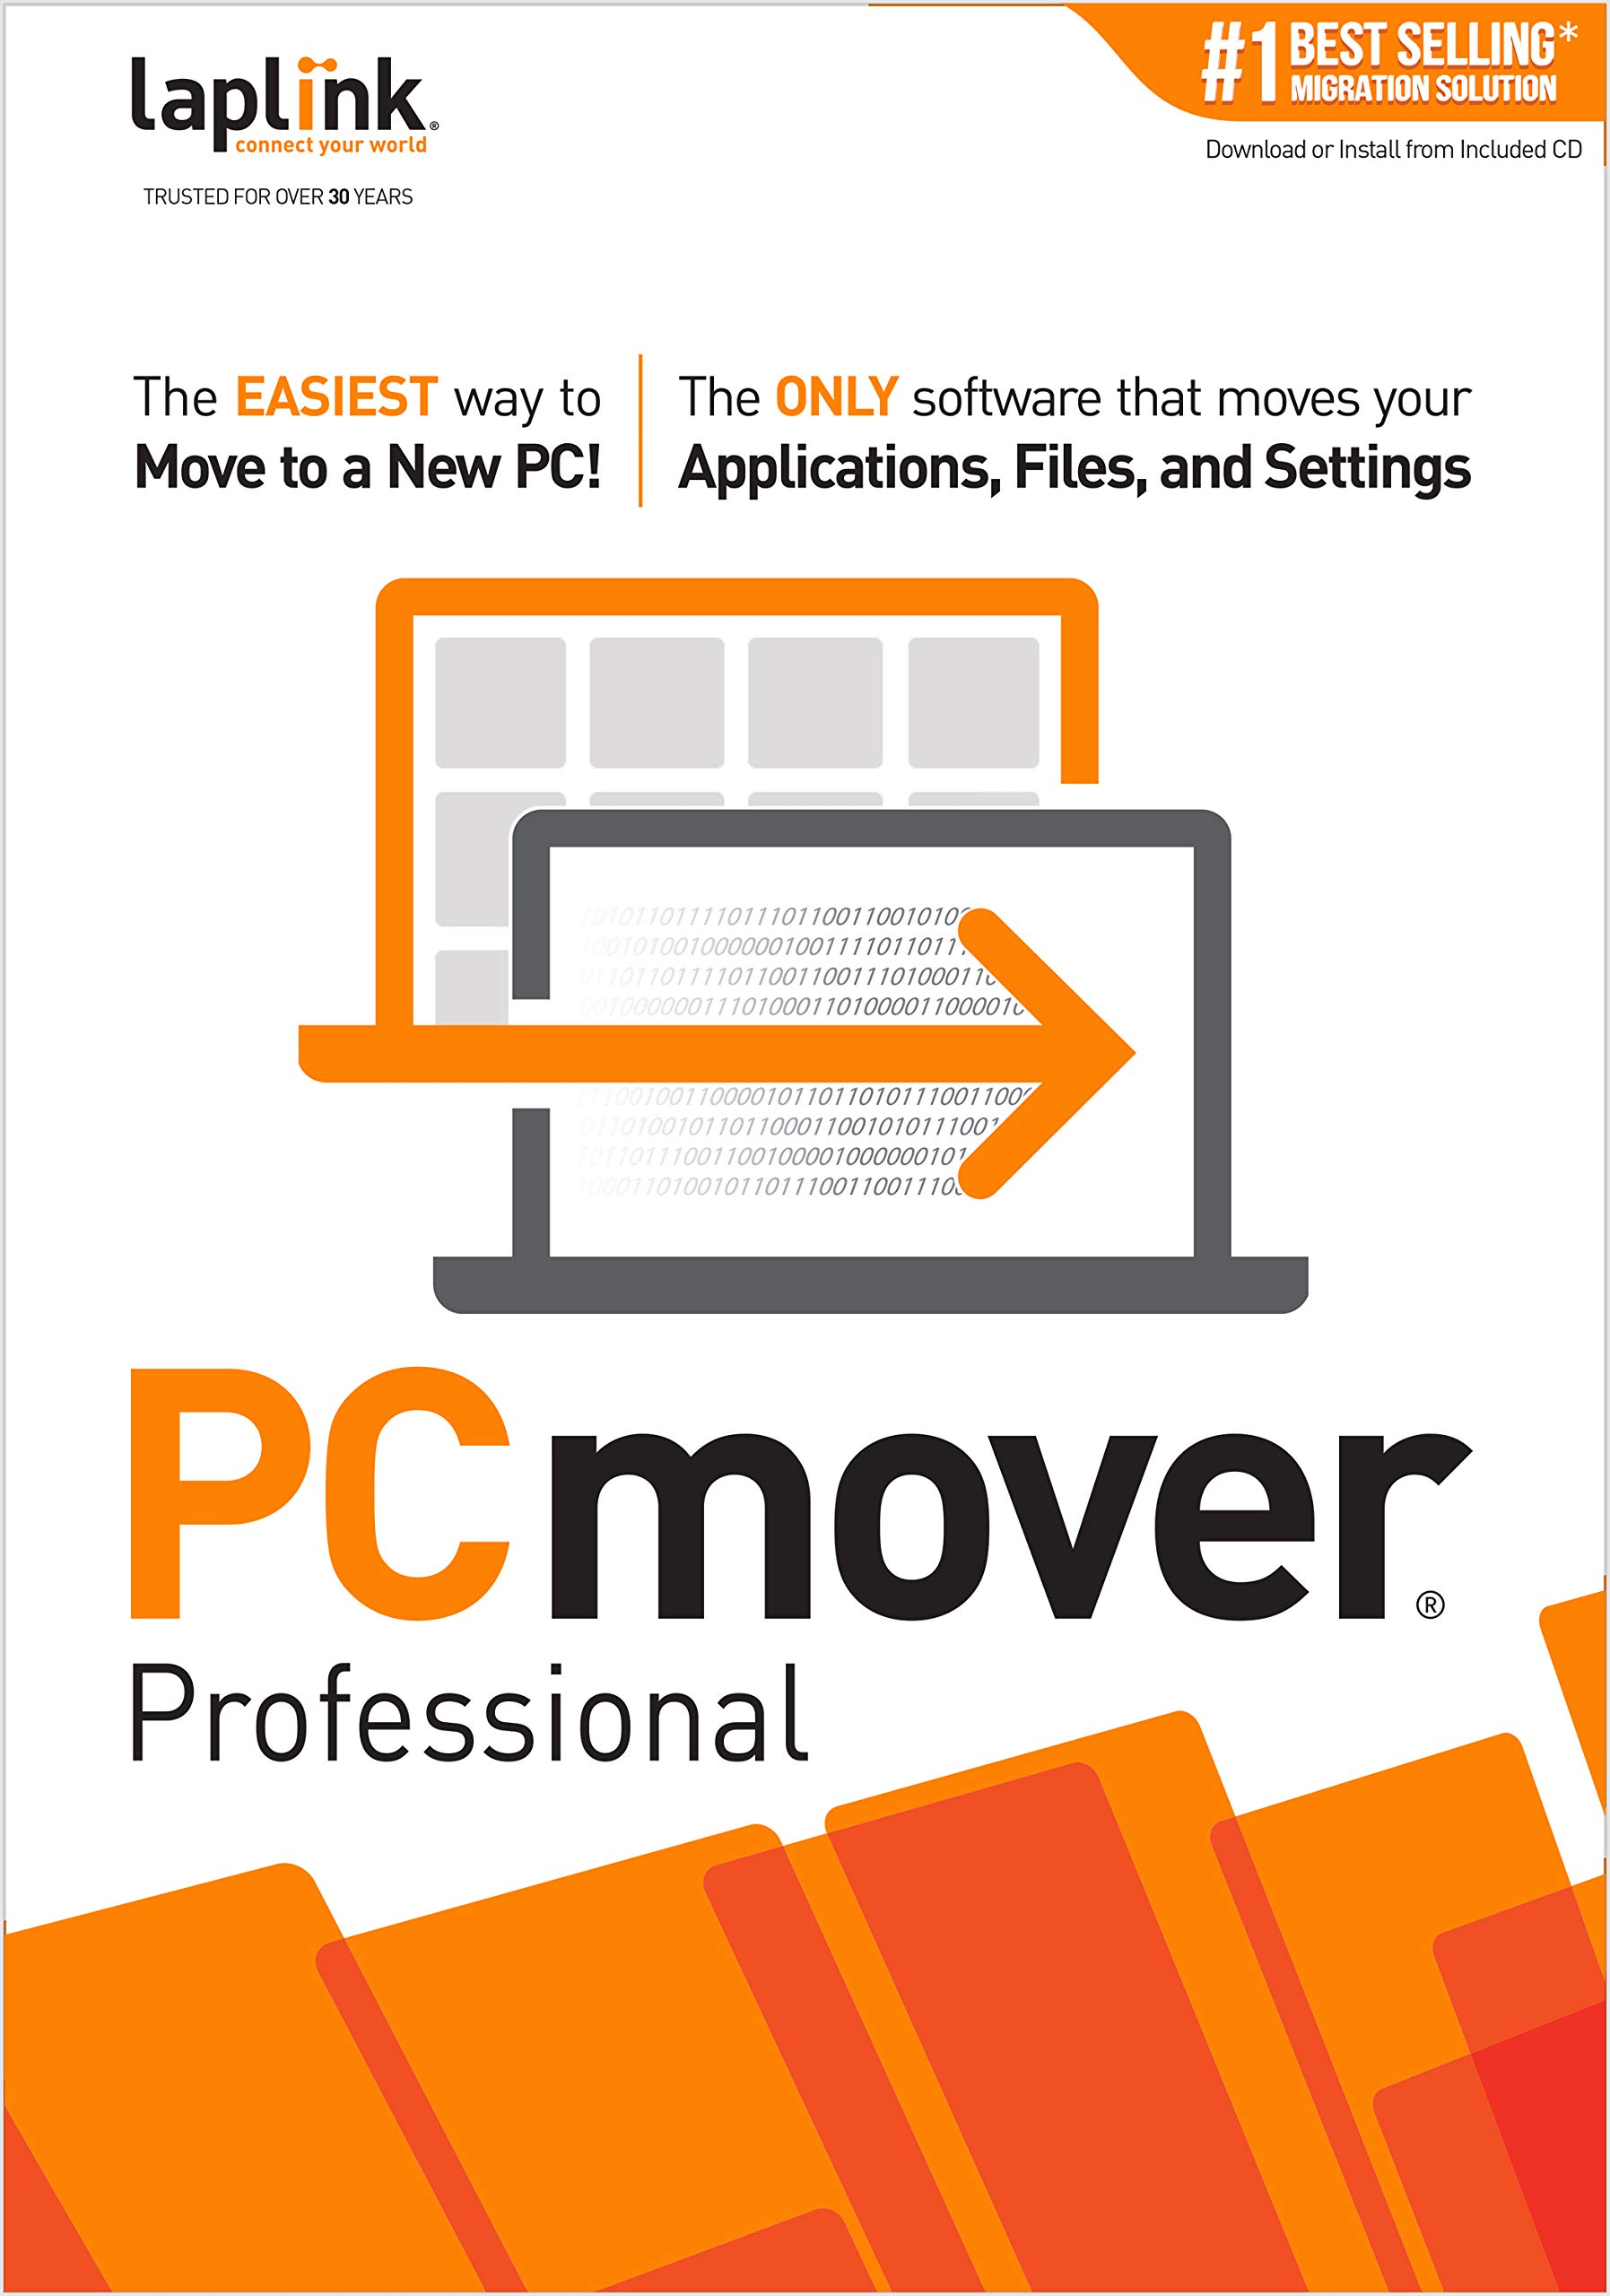 PCmover Professional 11 (2 Uses)  [PC Download] by Laplink Software, Inc.